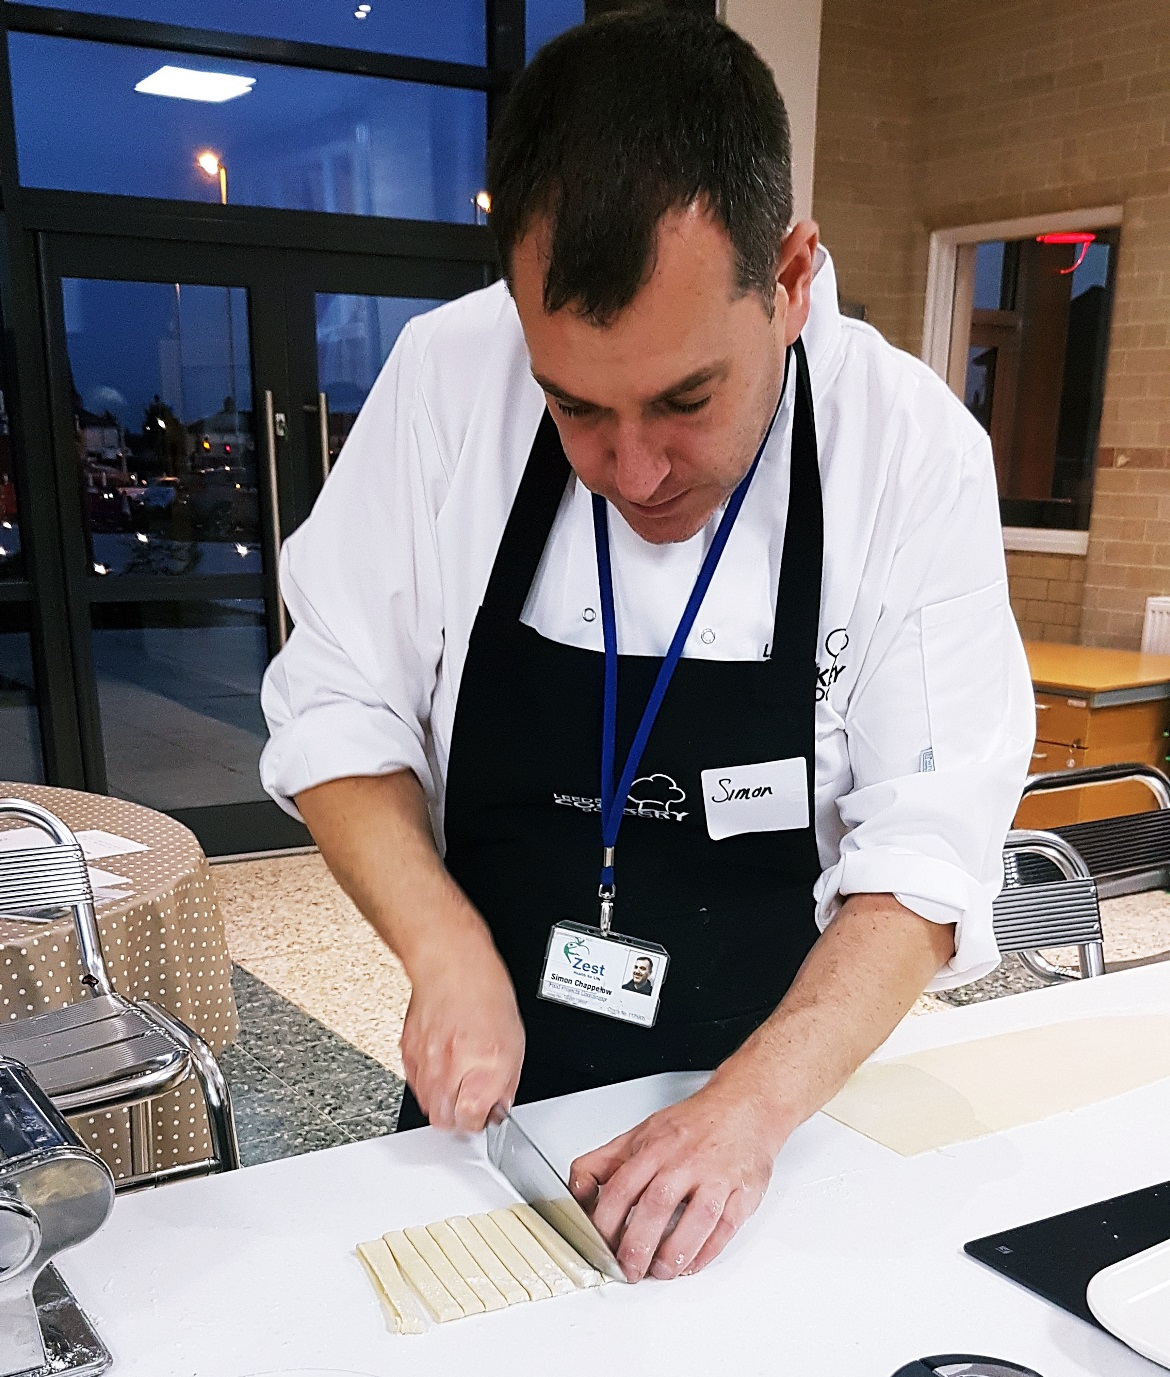 Cutting pasta dough into tagliatelle - Leeds Cookery School review by BeckyBecky Blogs